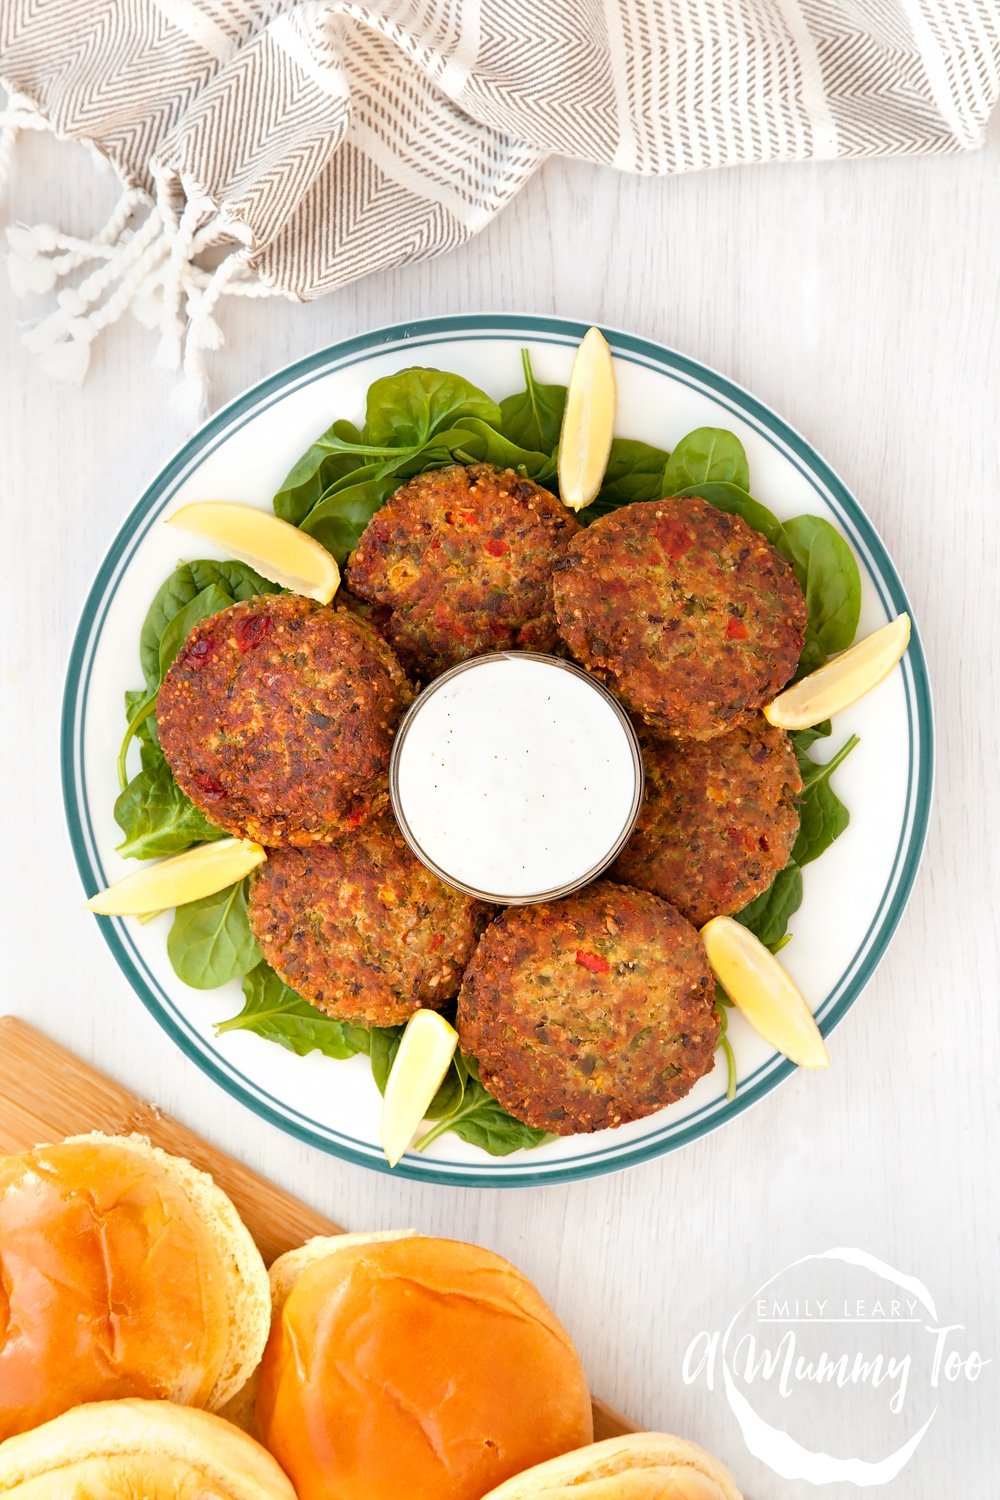 Protein-rich quinoa patties, packed with flavour and ready in minutes.